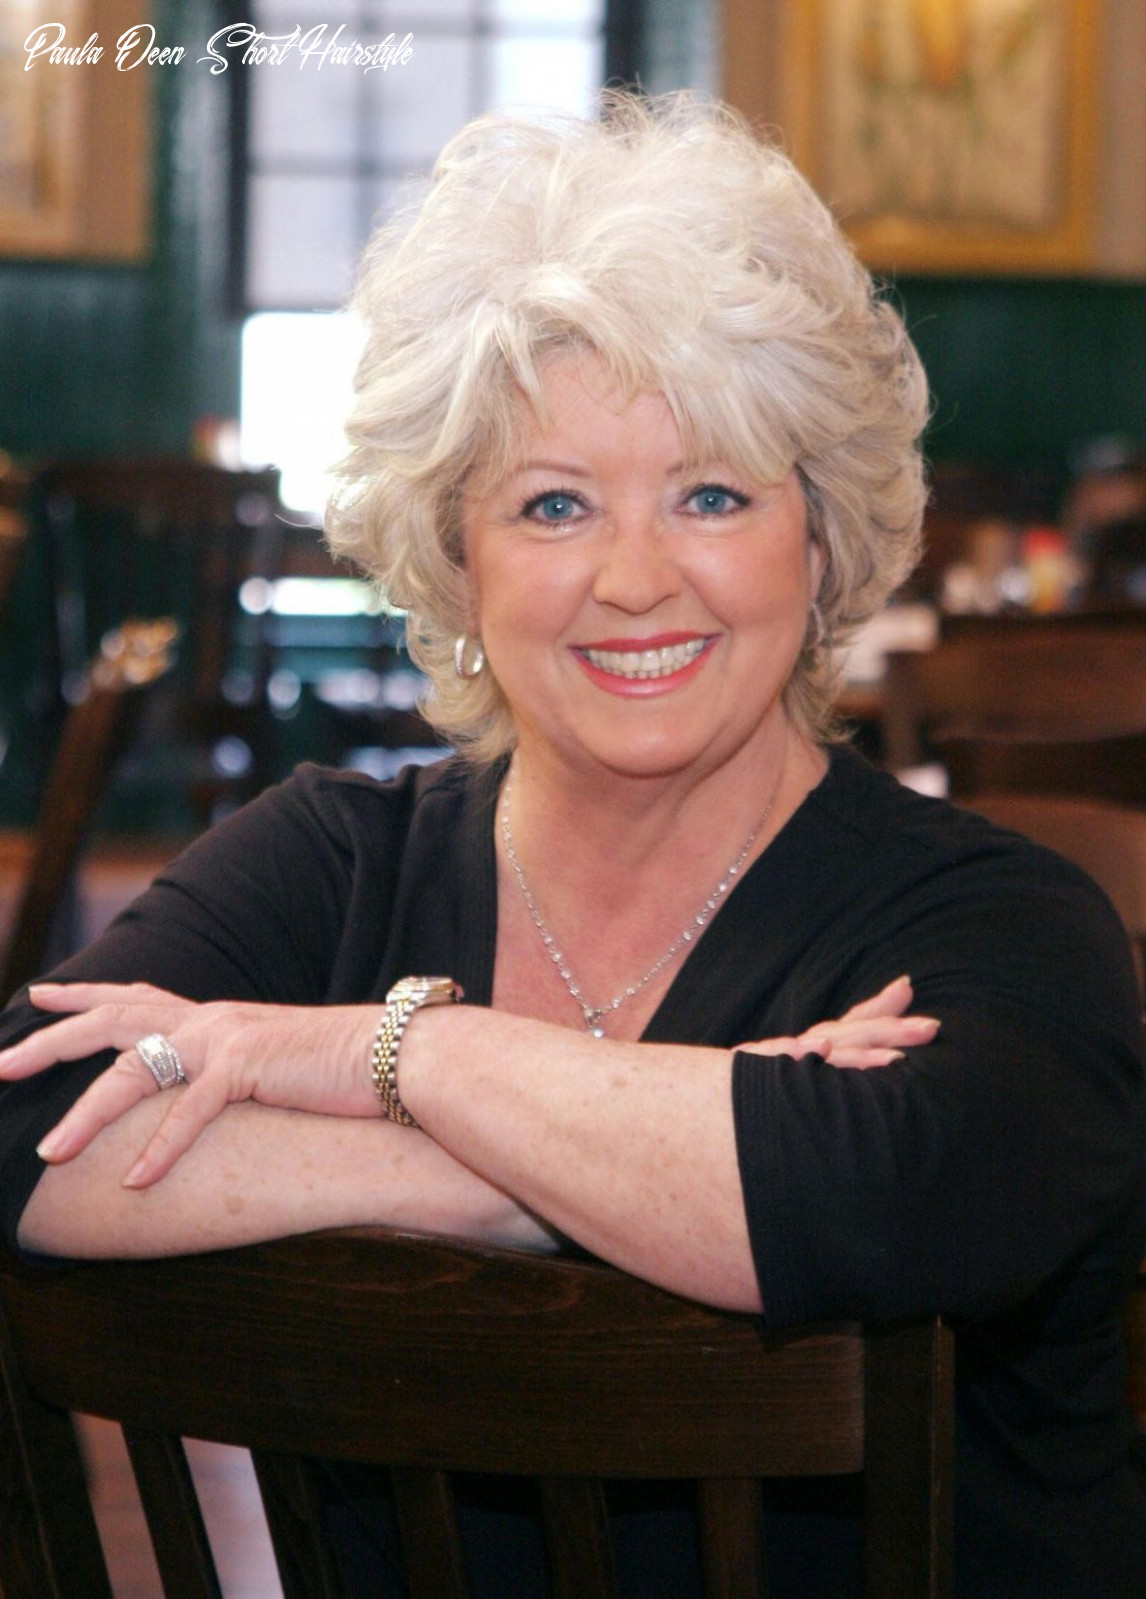 Learn more about the celebrity chef paula deen | mom hairstyles